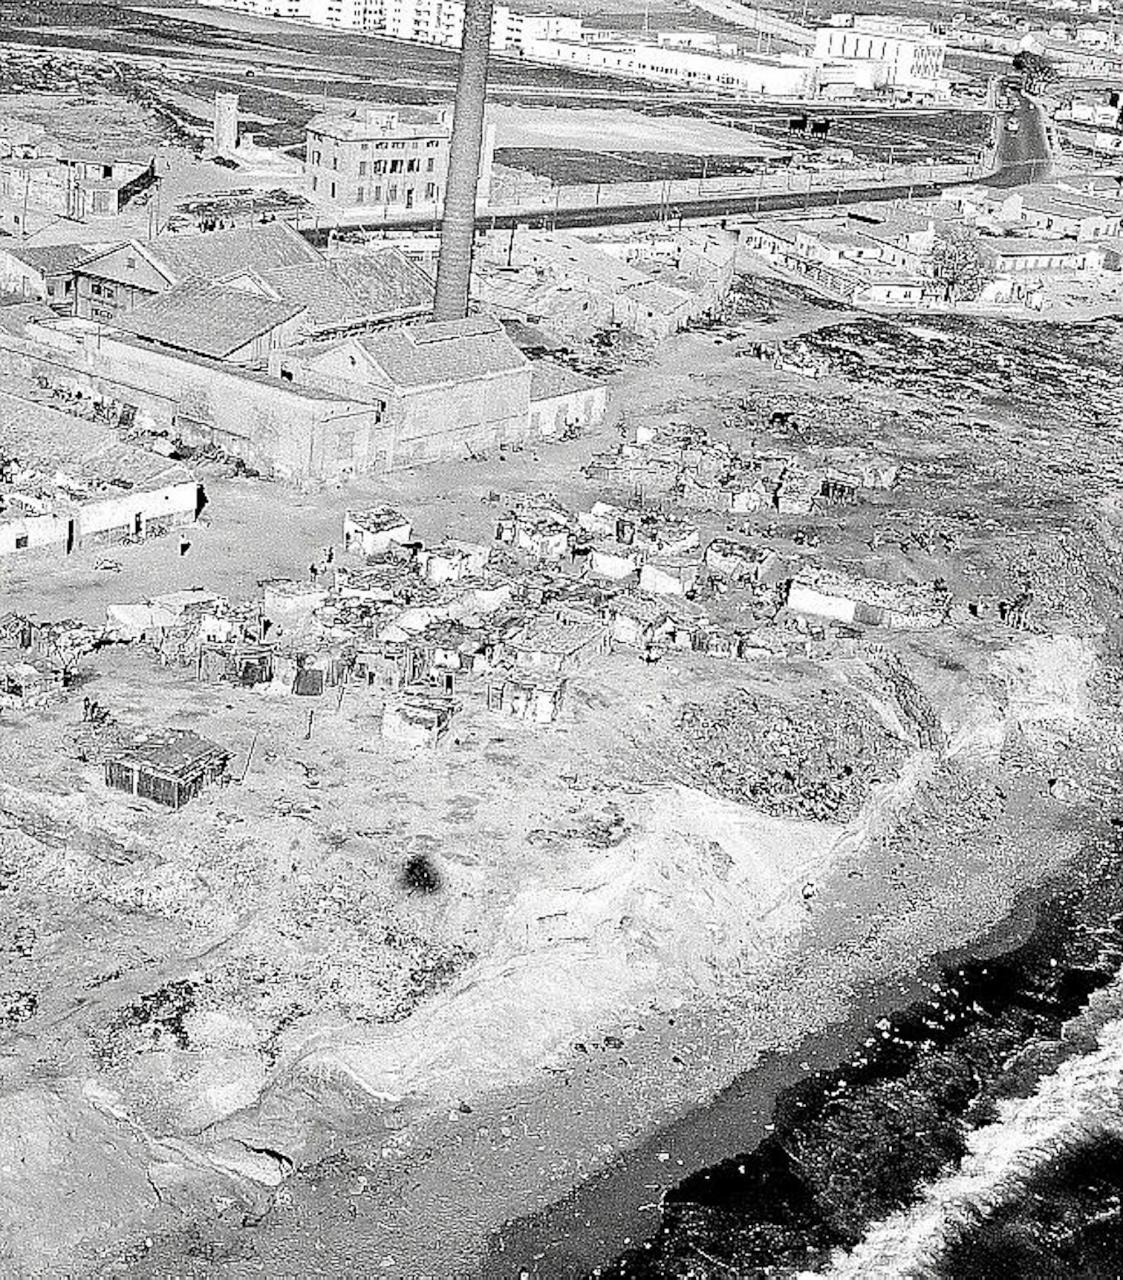 Shacks on Can Pere Antoni beach in the 1950's.